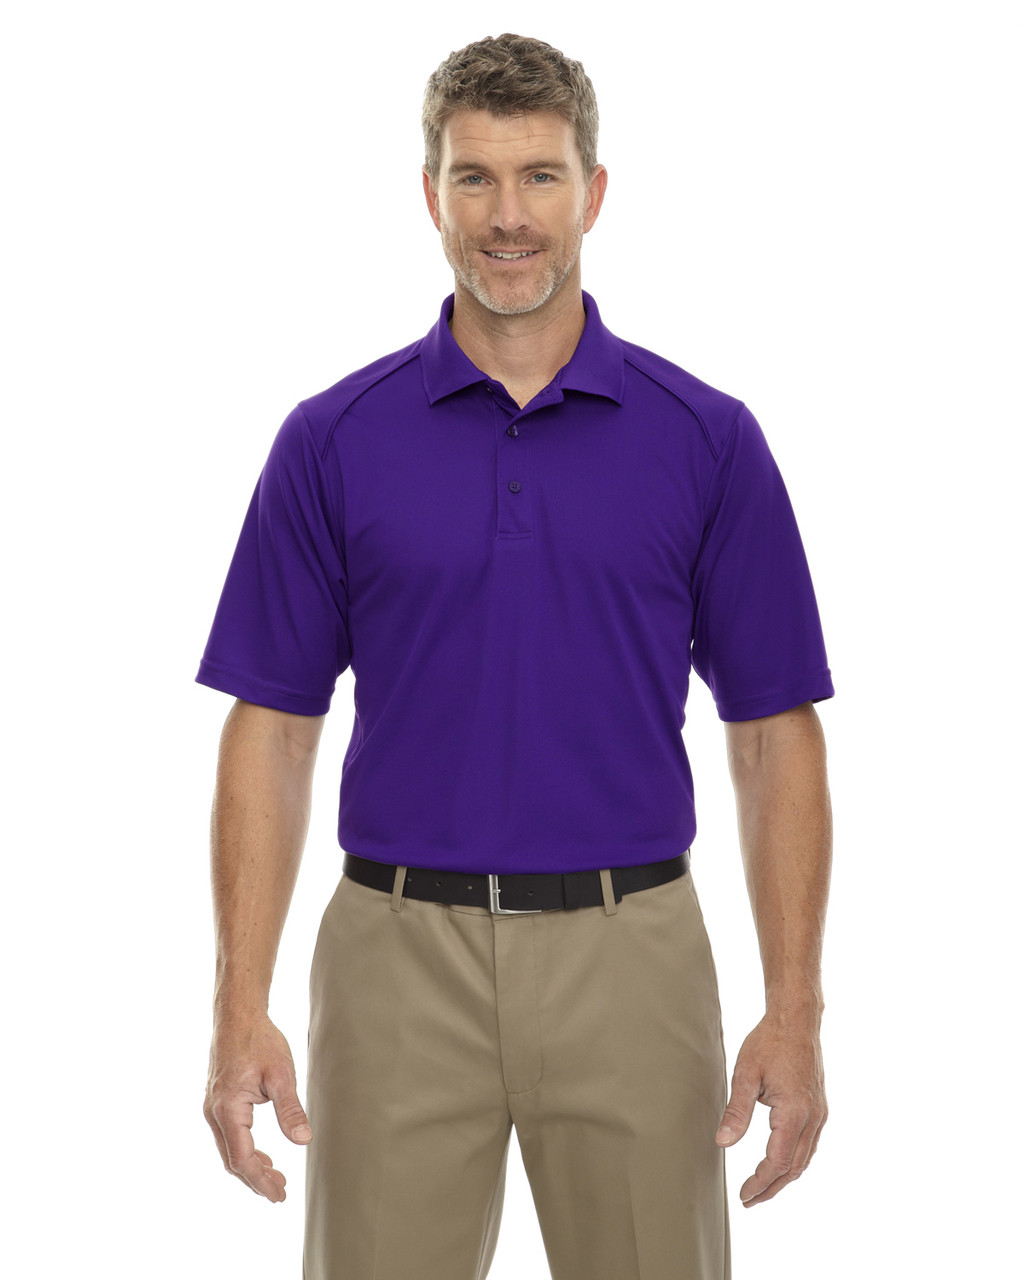 Campus Prple 85108 Ash City - Extreme Eperformance Men's Shield Short-Sleeve Polo Shirt